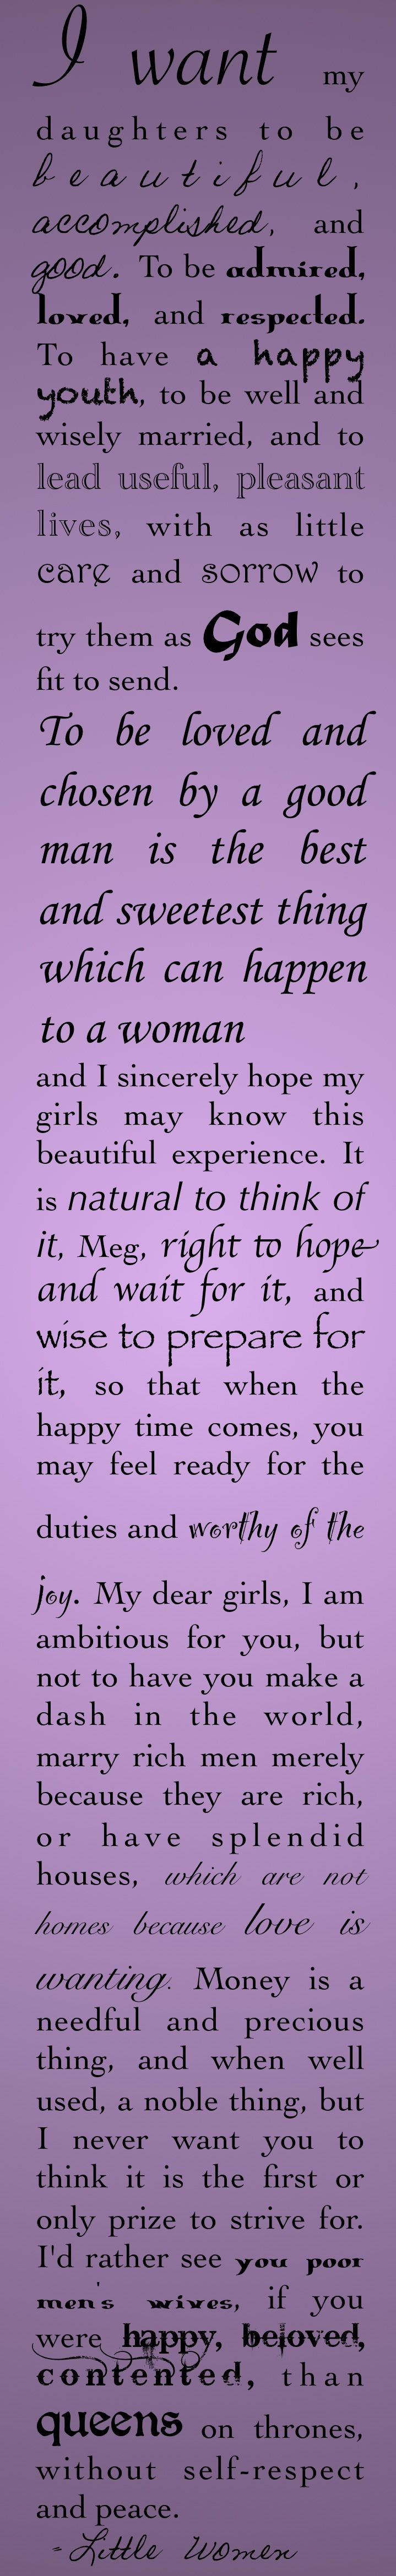 The Best Wishes. Marmee, Little Women, Louisa May Alcott She is so wise and lovely....like my own Marmee :)